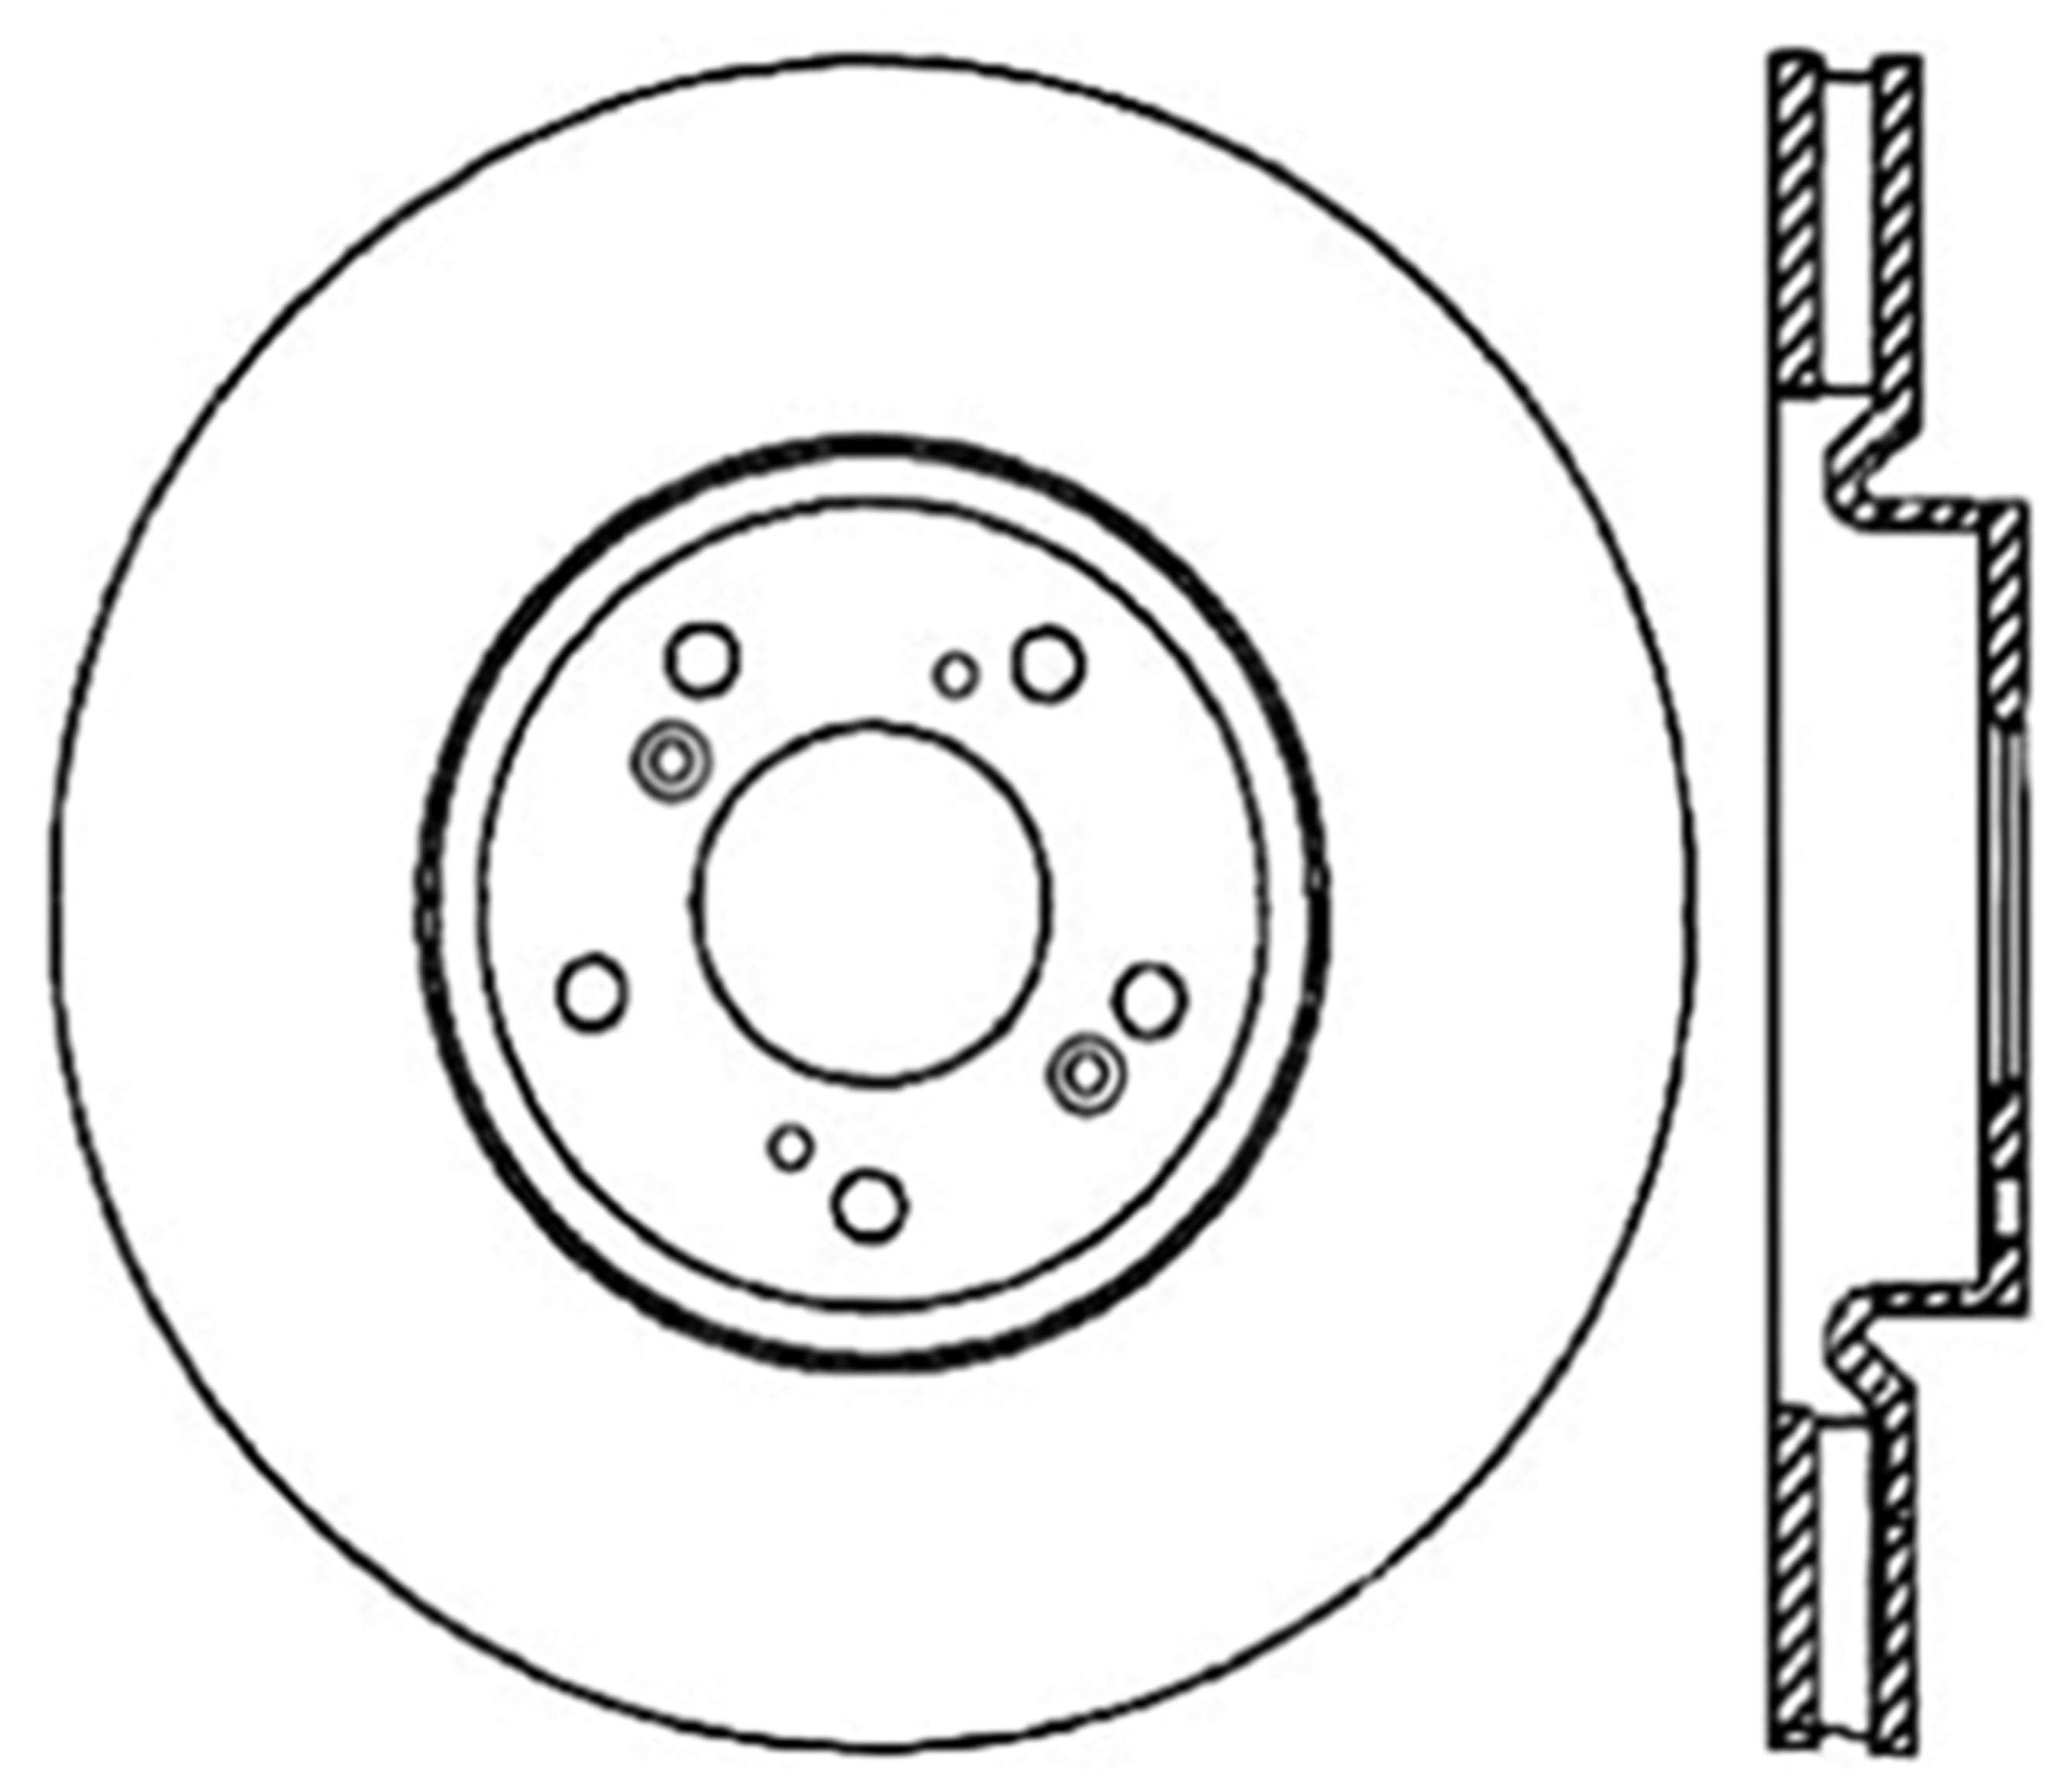 StopTech Disc Brake Rotor Front For 2004